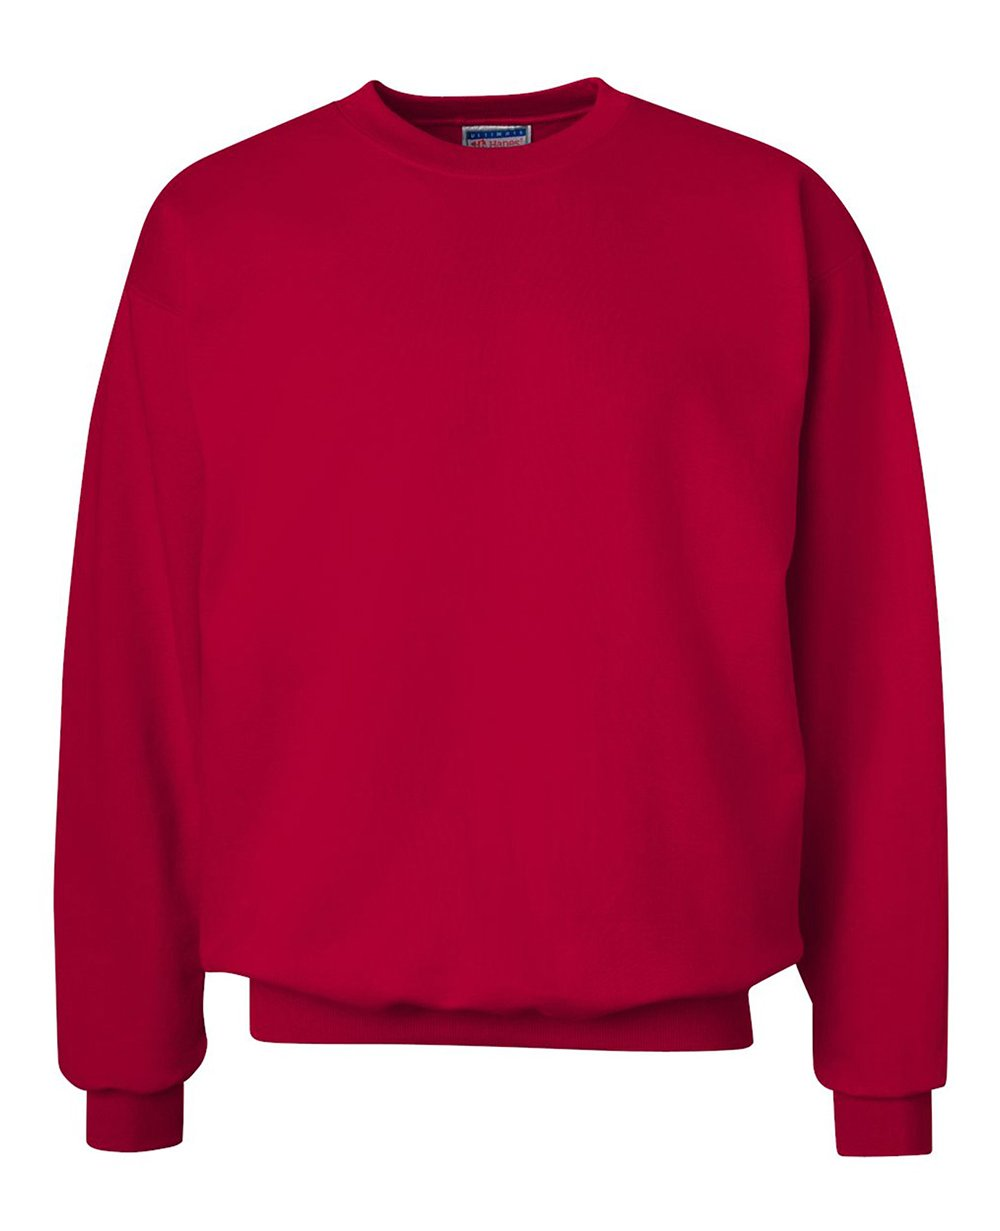 Sweater in Deep Red